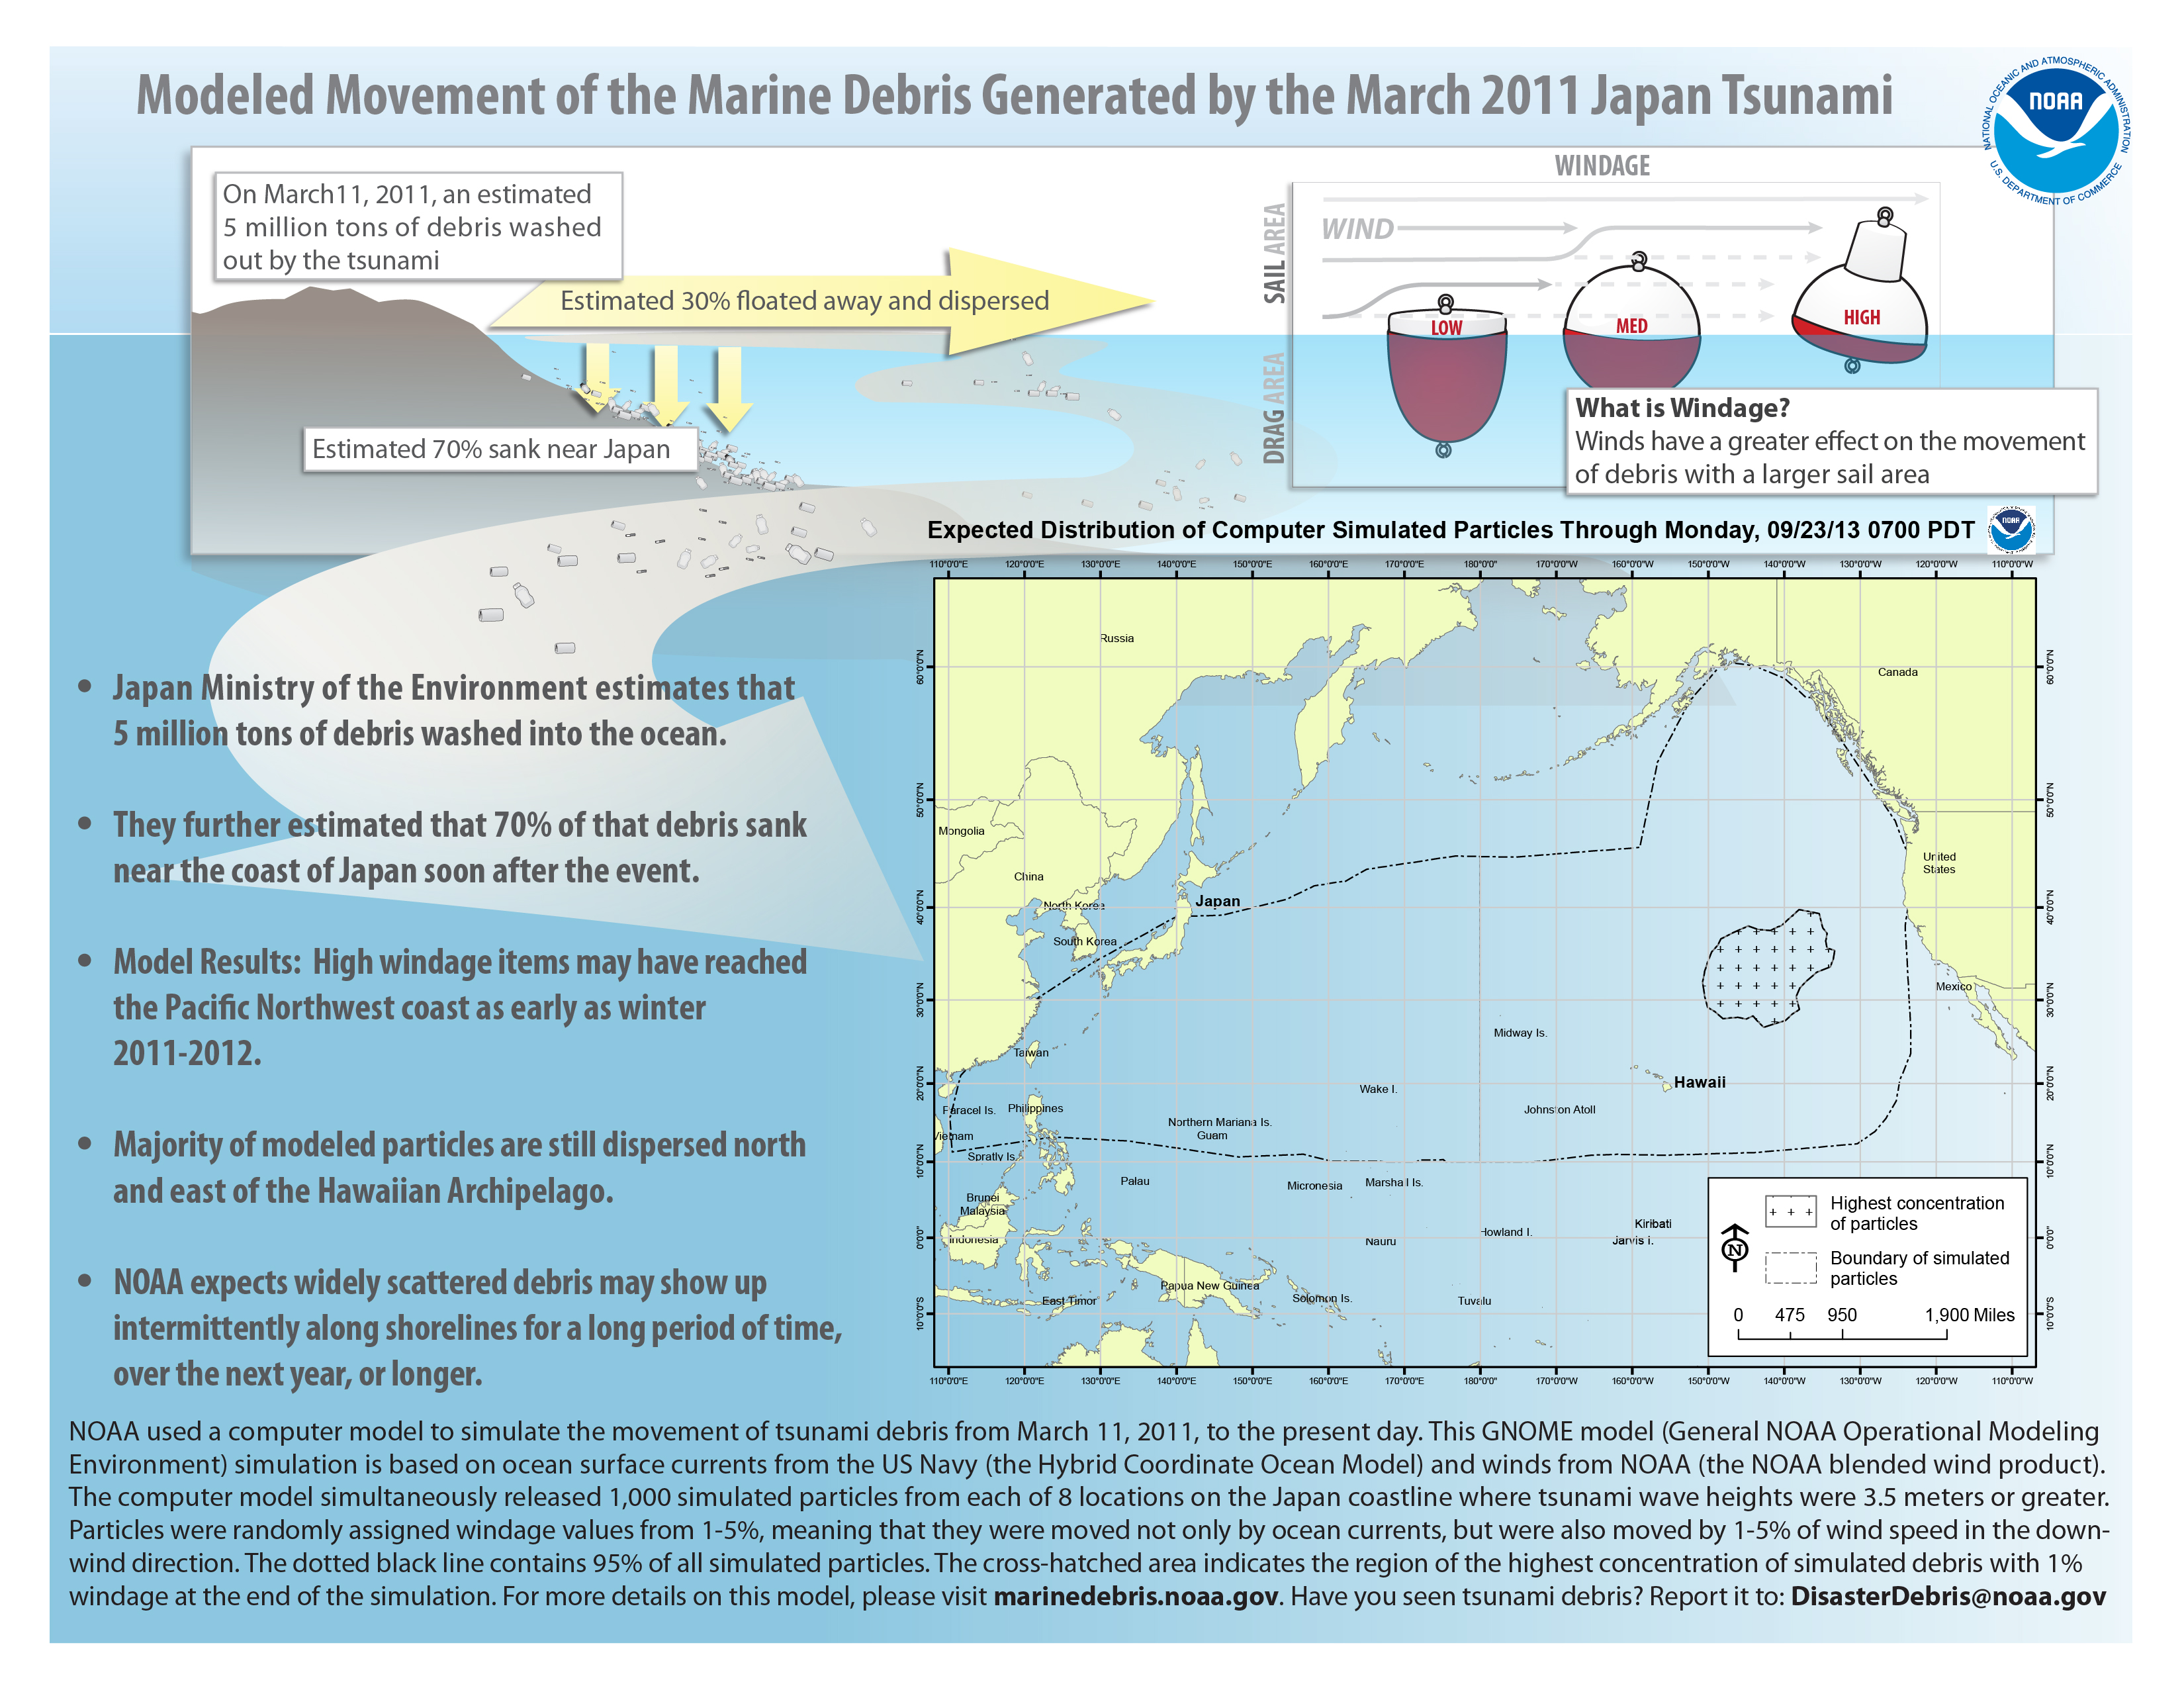 NOAA model of past and current predictions of the location and concentrations of Japan tsunami marine debris. Data current as of April 3, 2013. (NOAA) Click to enlarge.